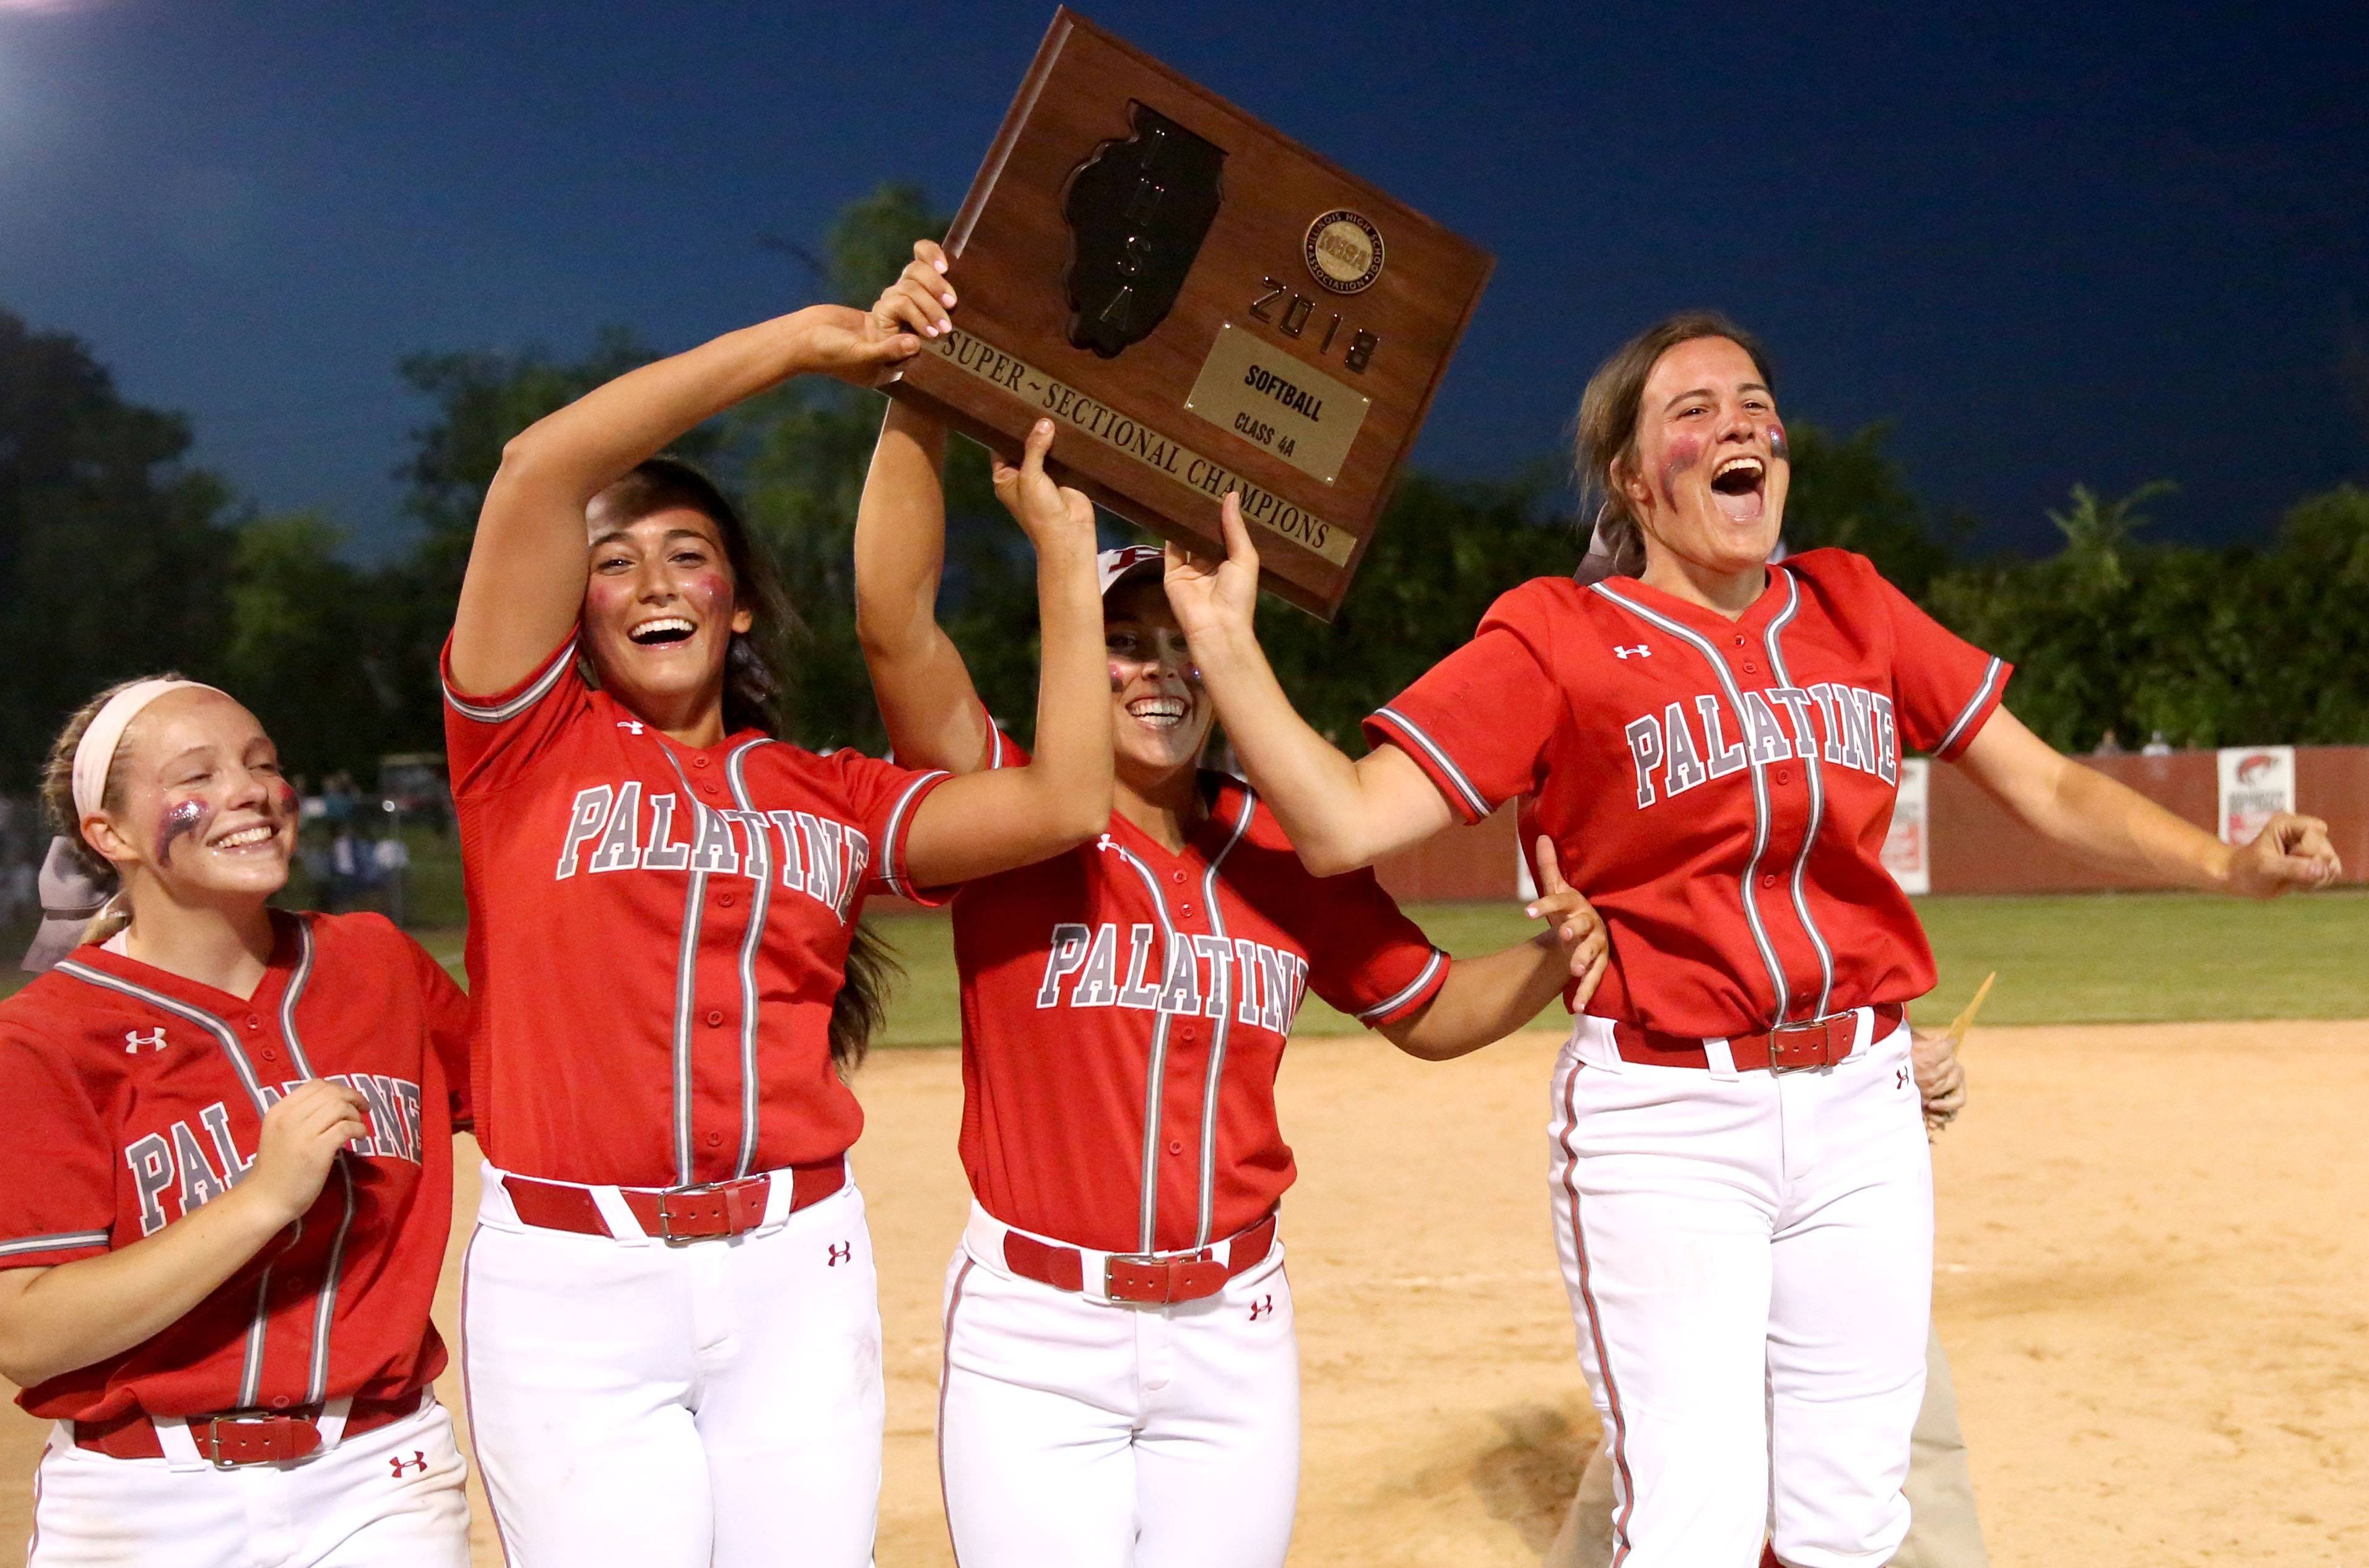 The Pirates of Palatine hoist their hardware after a 6-3 win in the Class 4A supersectional at Barrington on Monday night.